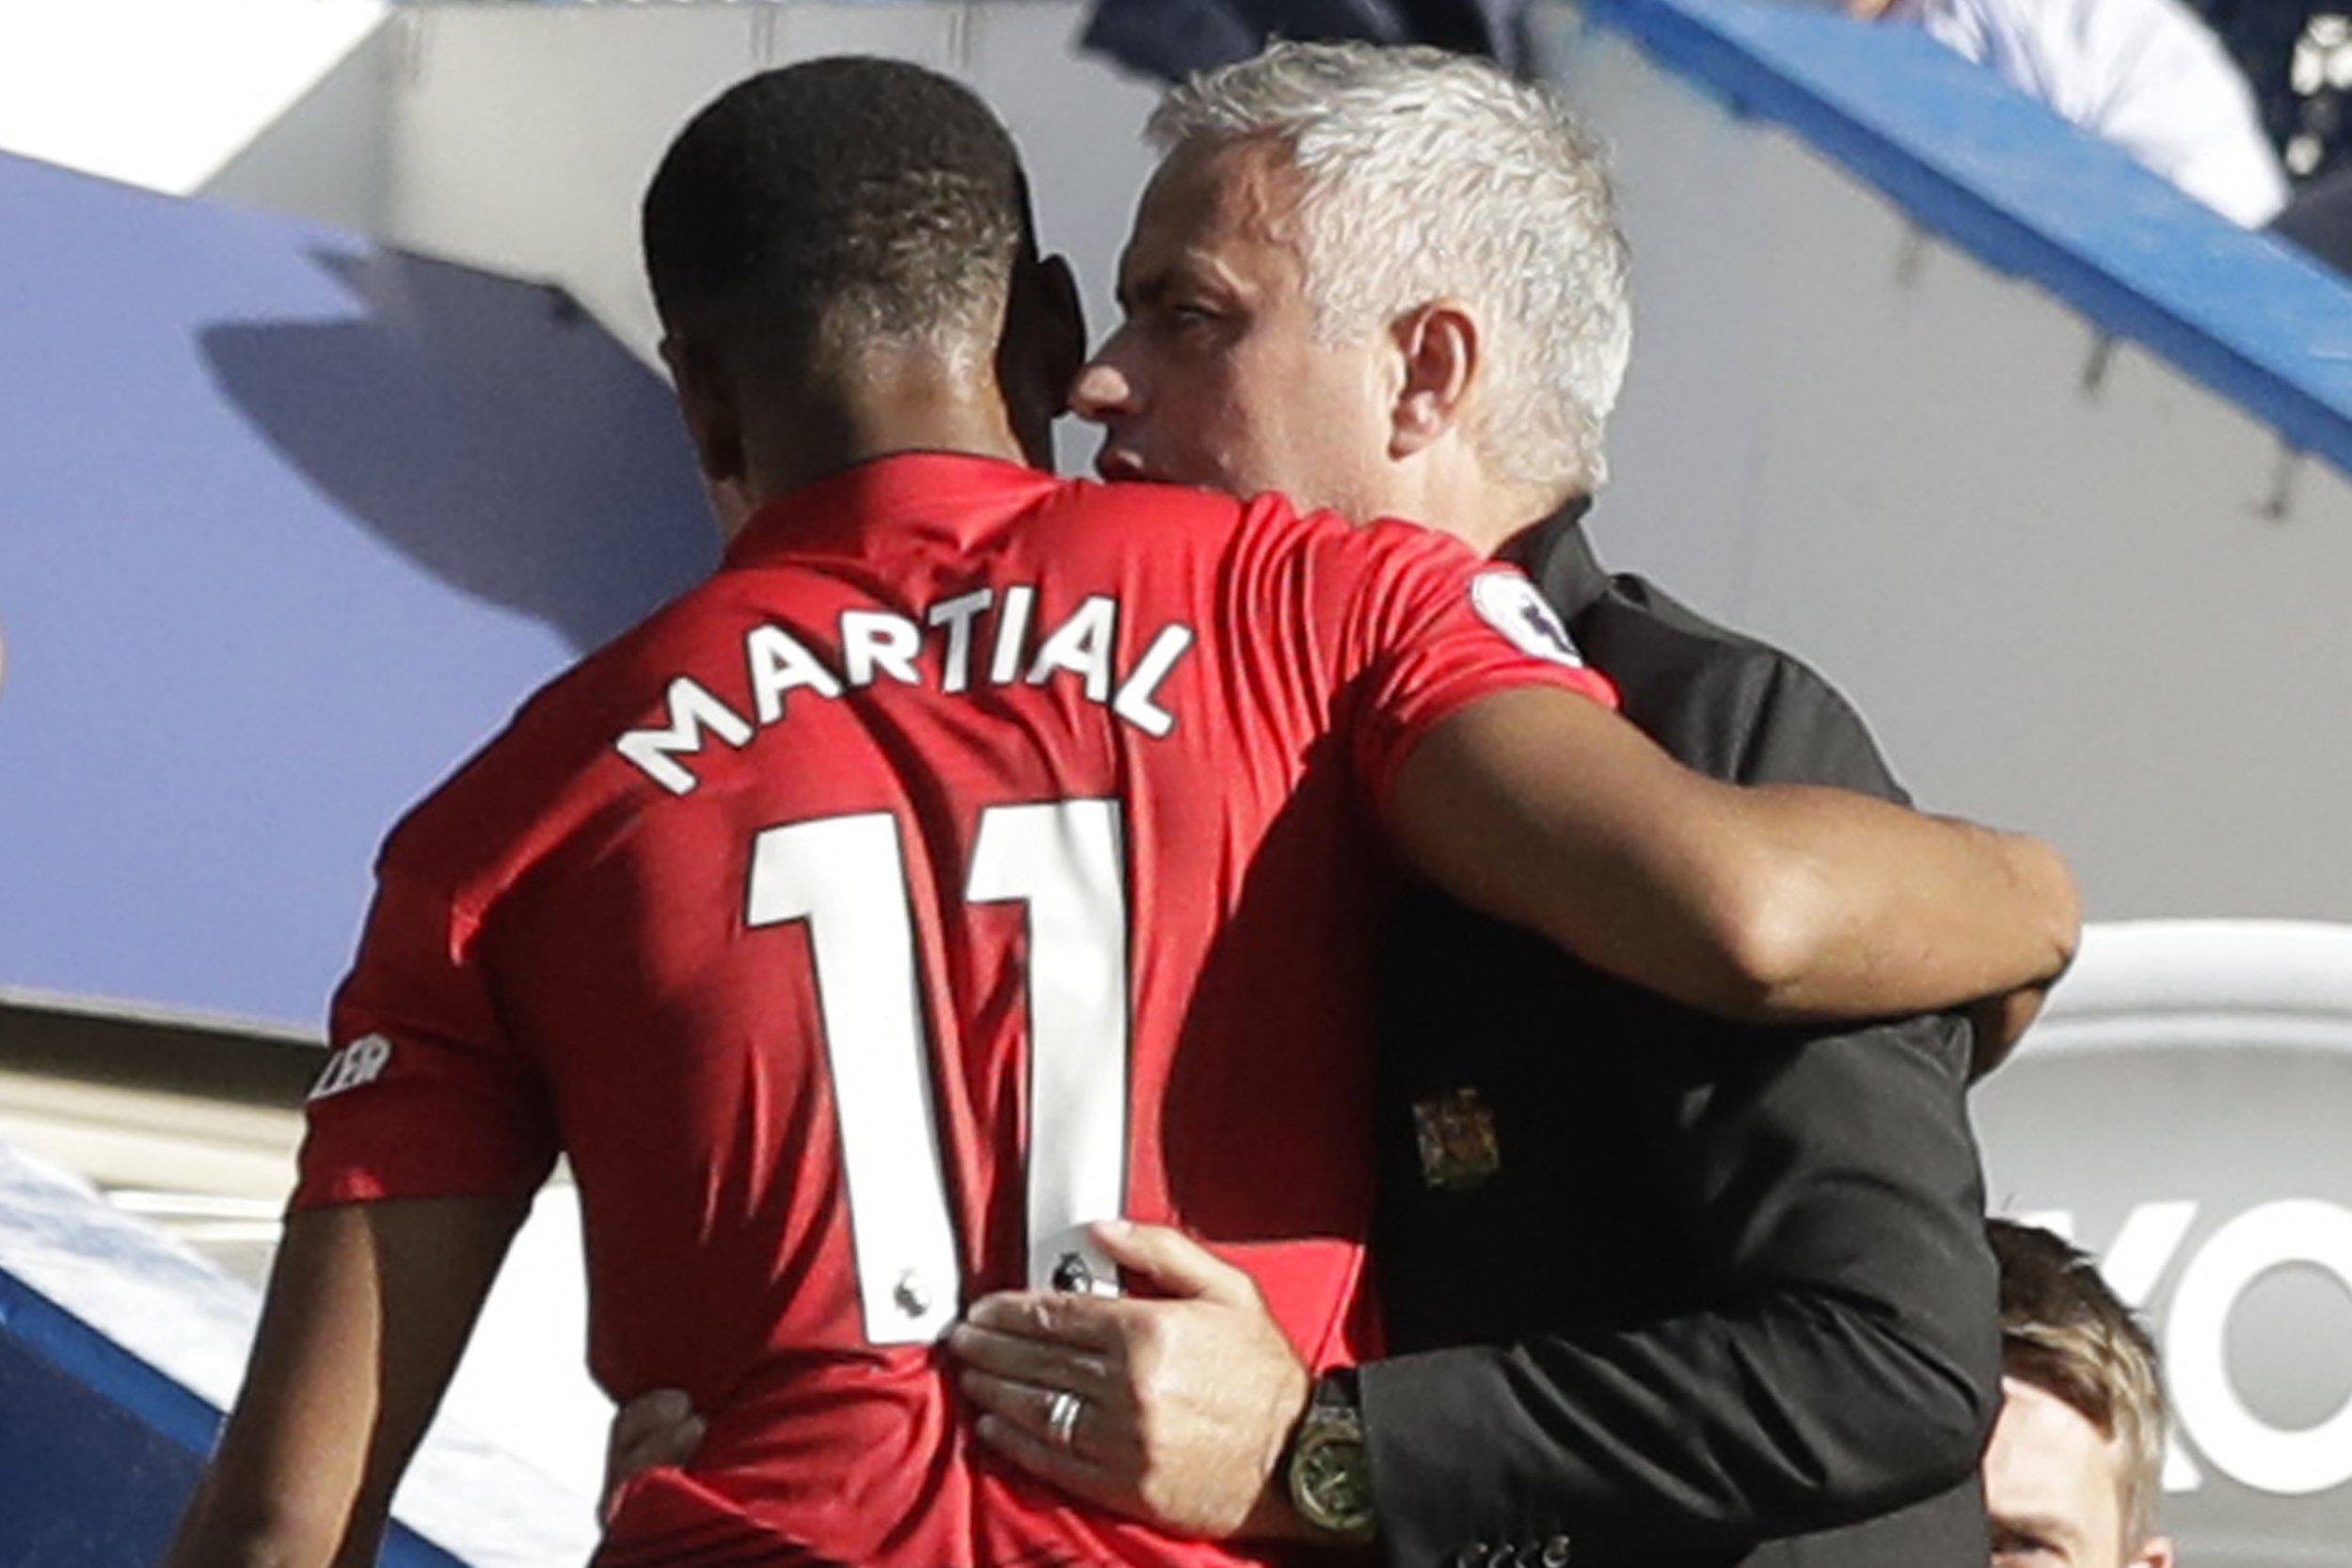 ManU coach Jose Mourinho hugs Anthony Martial who scored two goals after taking him off for a substitute during their English Premier League soccer match between Chelsea and Manchester United at Stamford Bridge stadium in London Saturday, Oct. 20, 2018. (AP Photo/Matt Dunham)